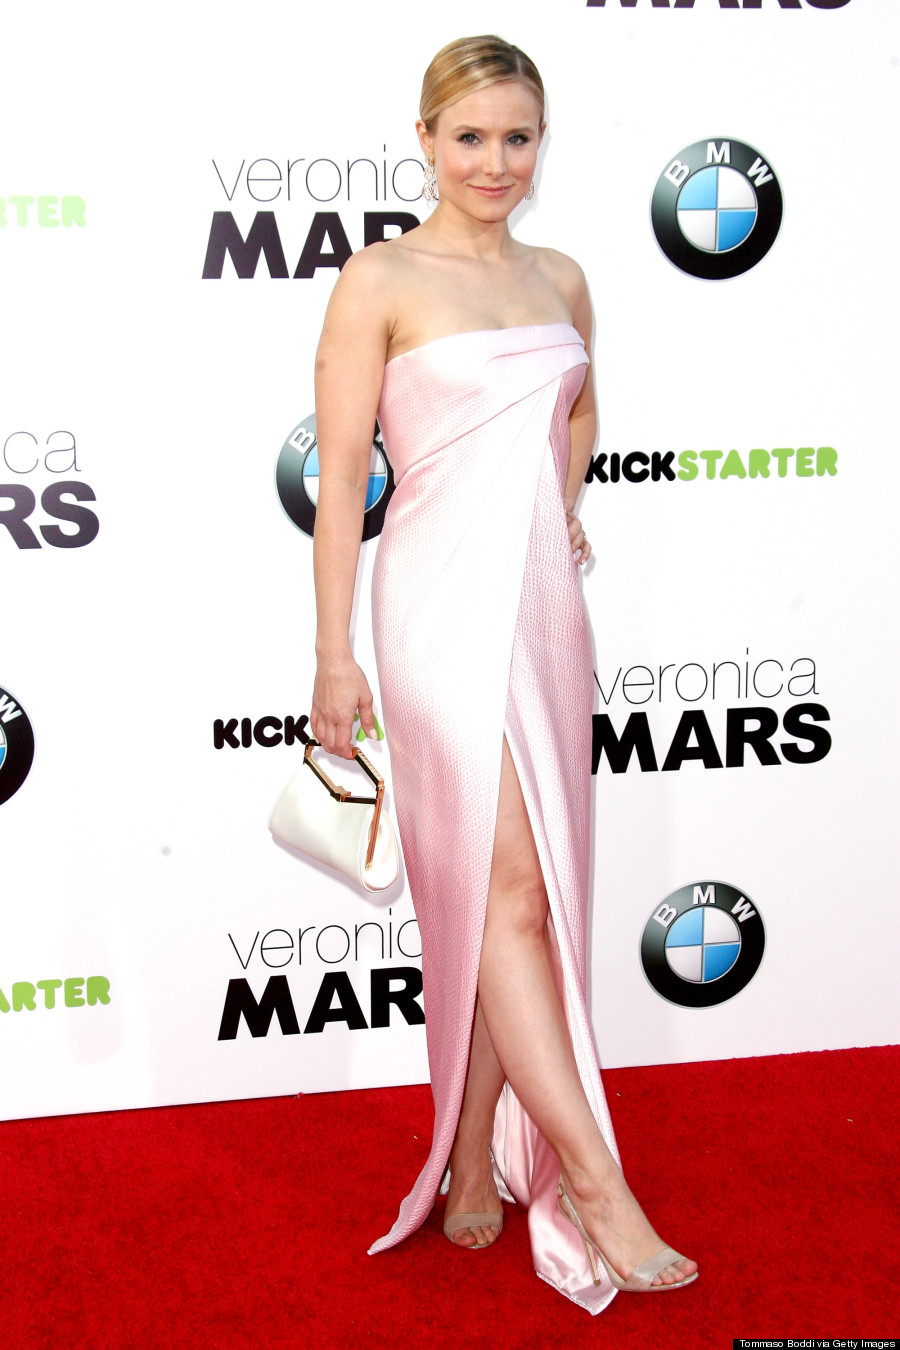 Kristen Bell Rocks Dress With High Slit At Veronica Mars